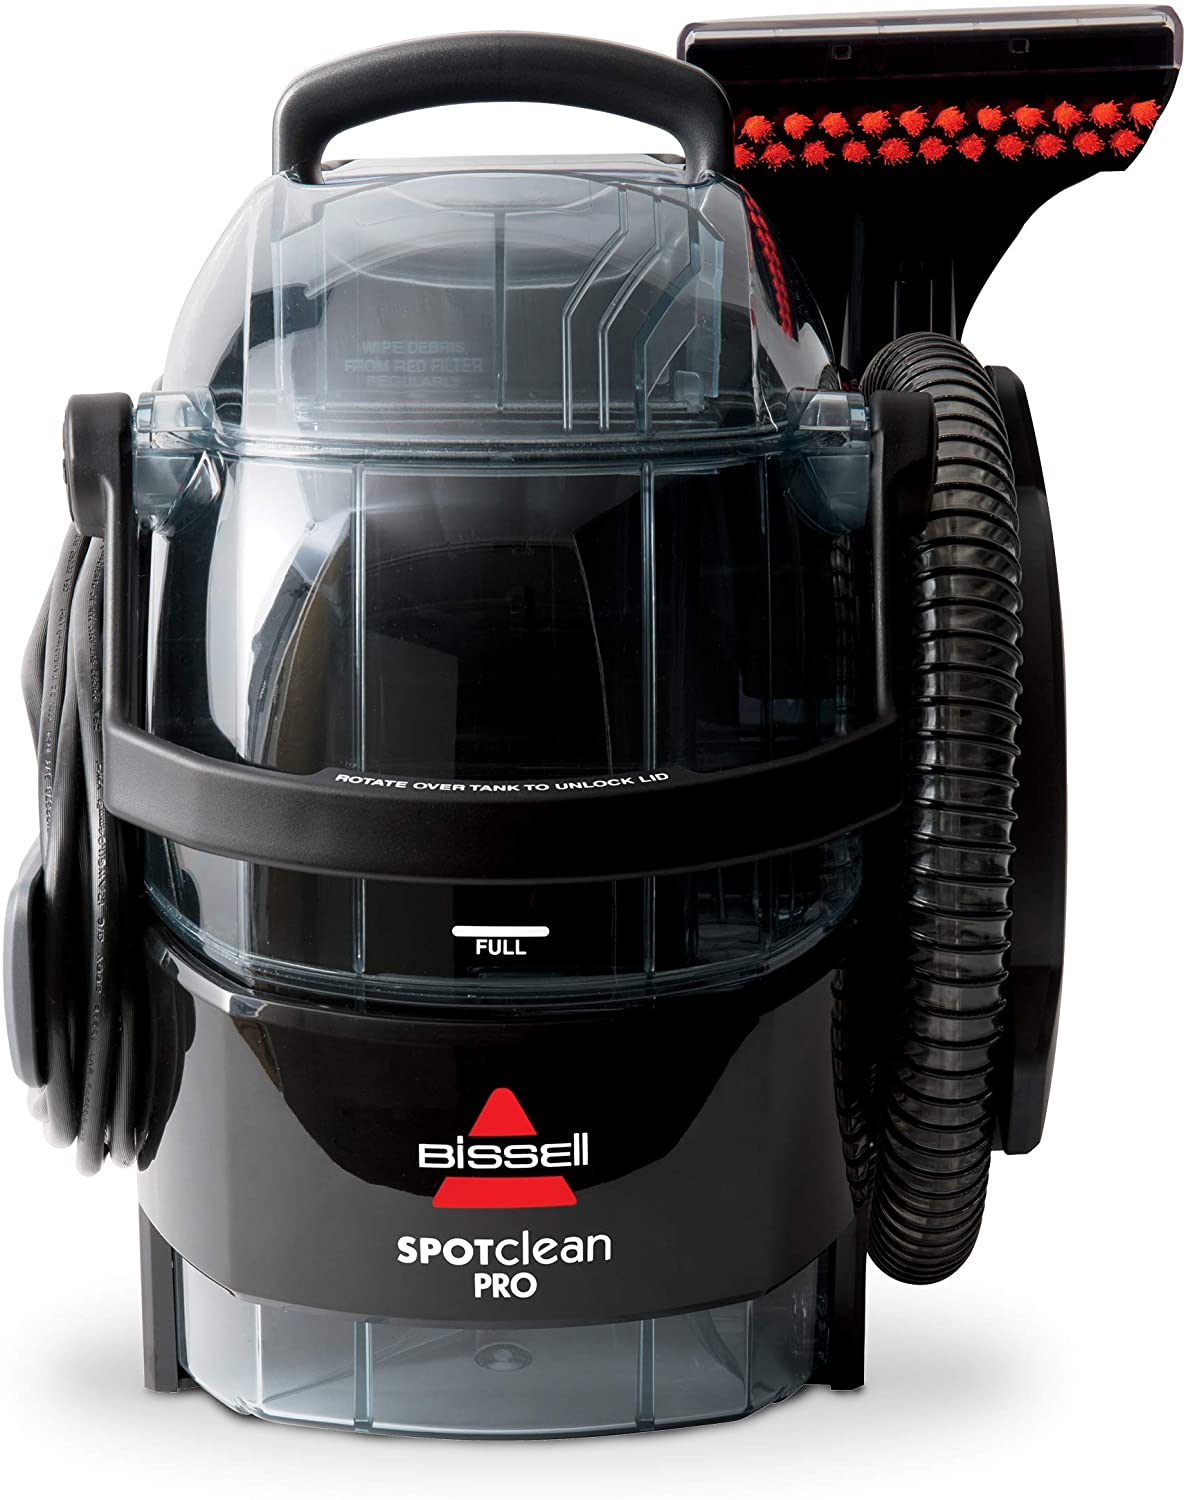 Bissell 3625 SpotClean Pro carpet Cleaner Product Image